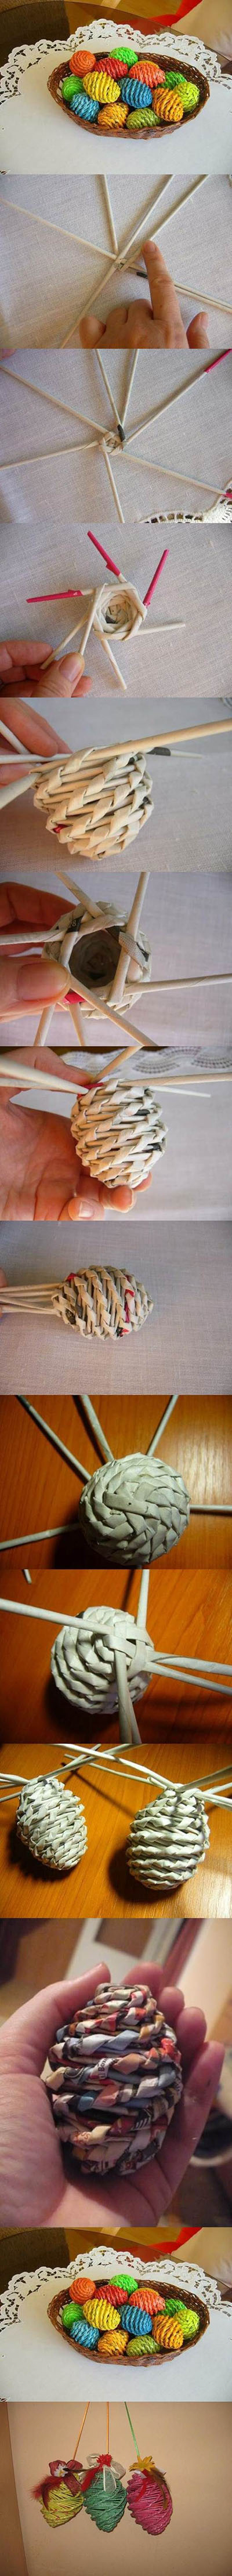 18 DIY Woven Paper Easter Eggs 099a